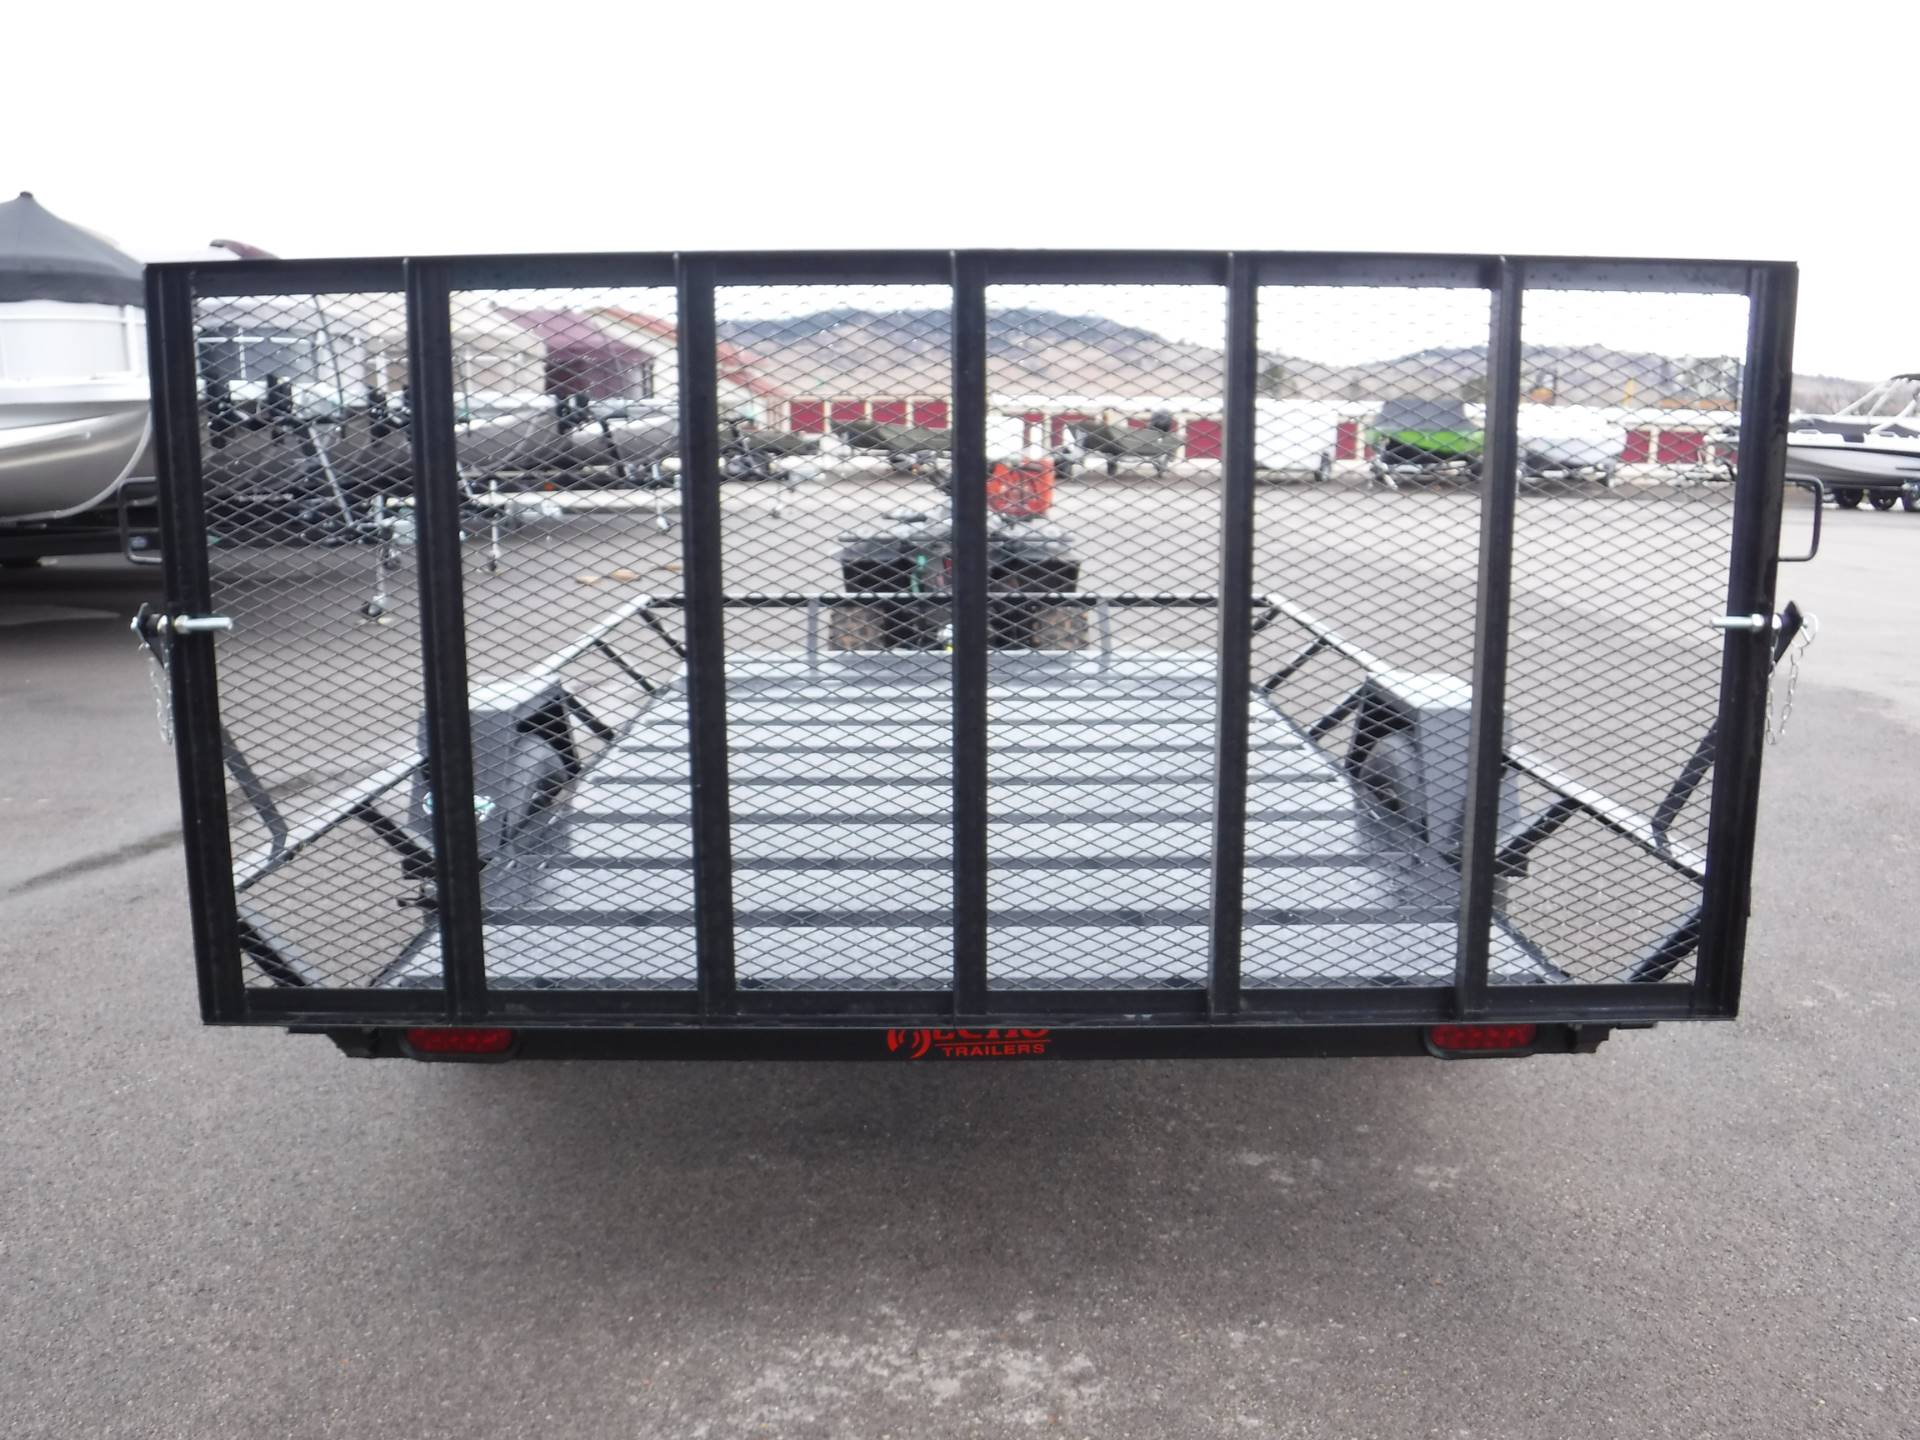 2021 Echo Trailers 2-Place Extra-Width Extra-Length ATV/UTV Trailer in Spearfish, South Dakota - Photo 6